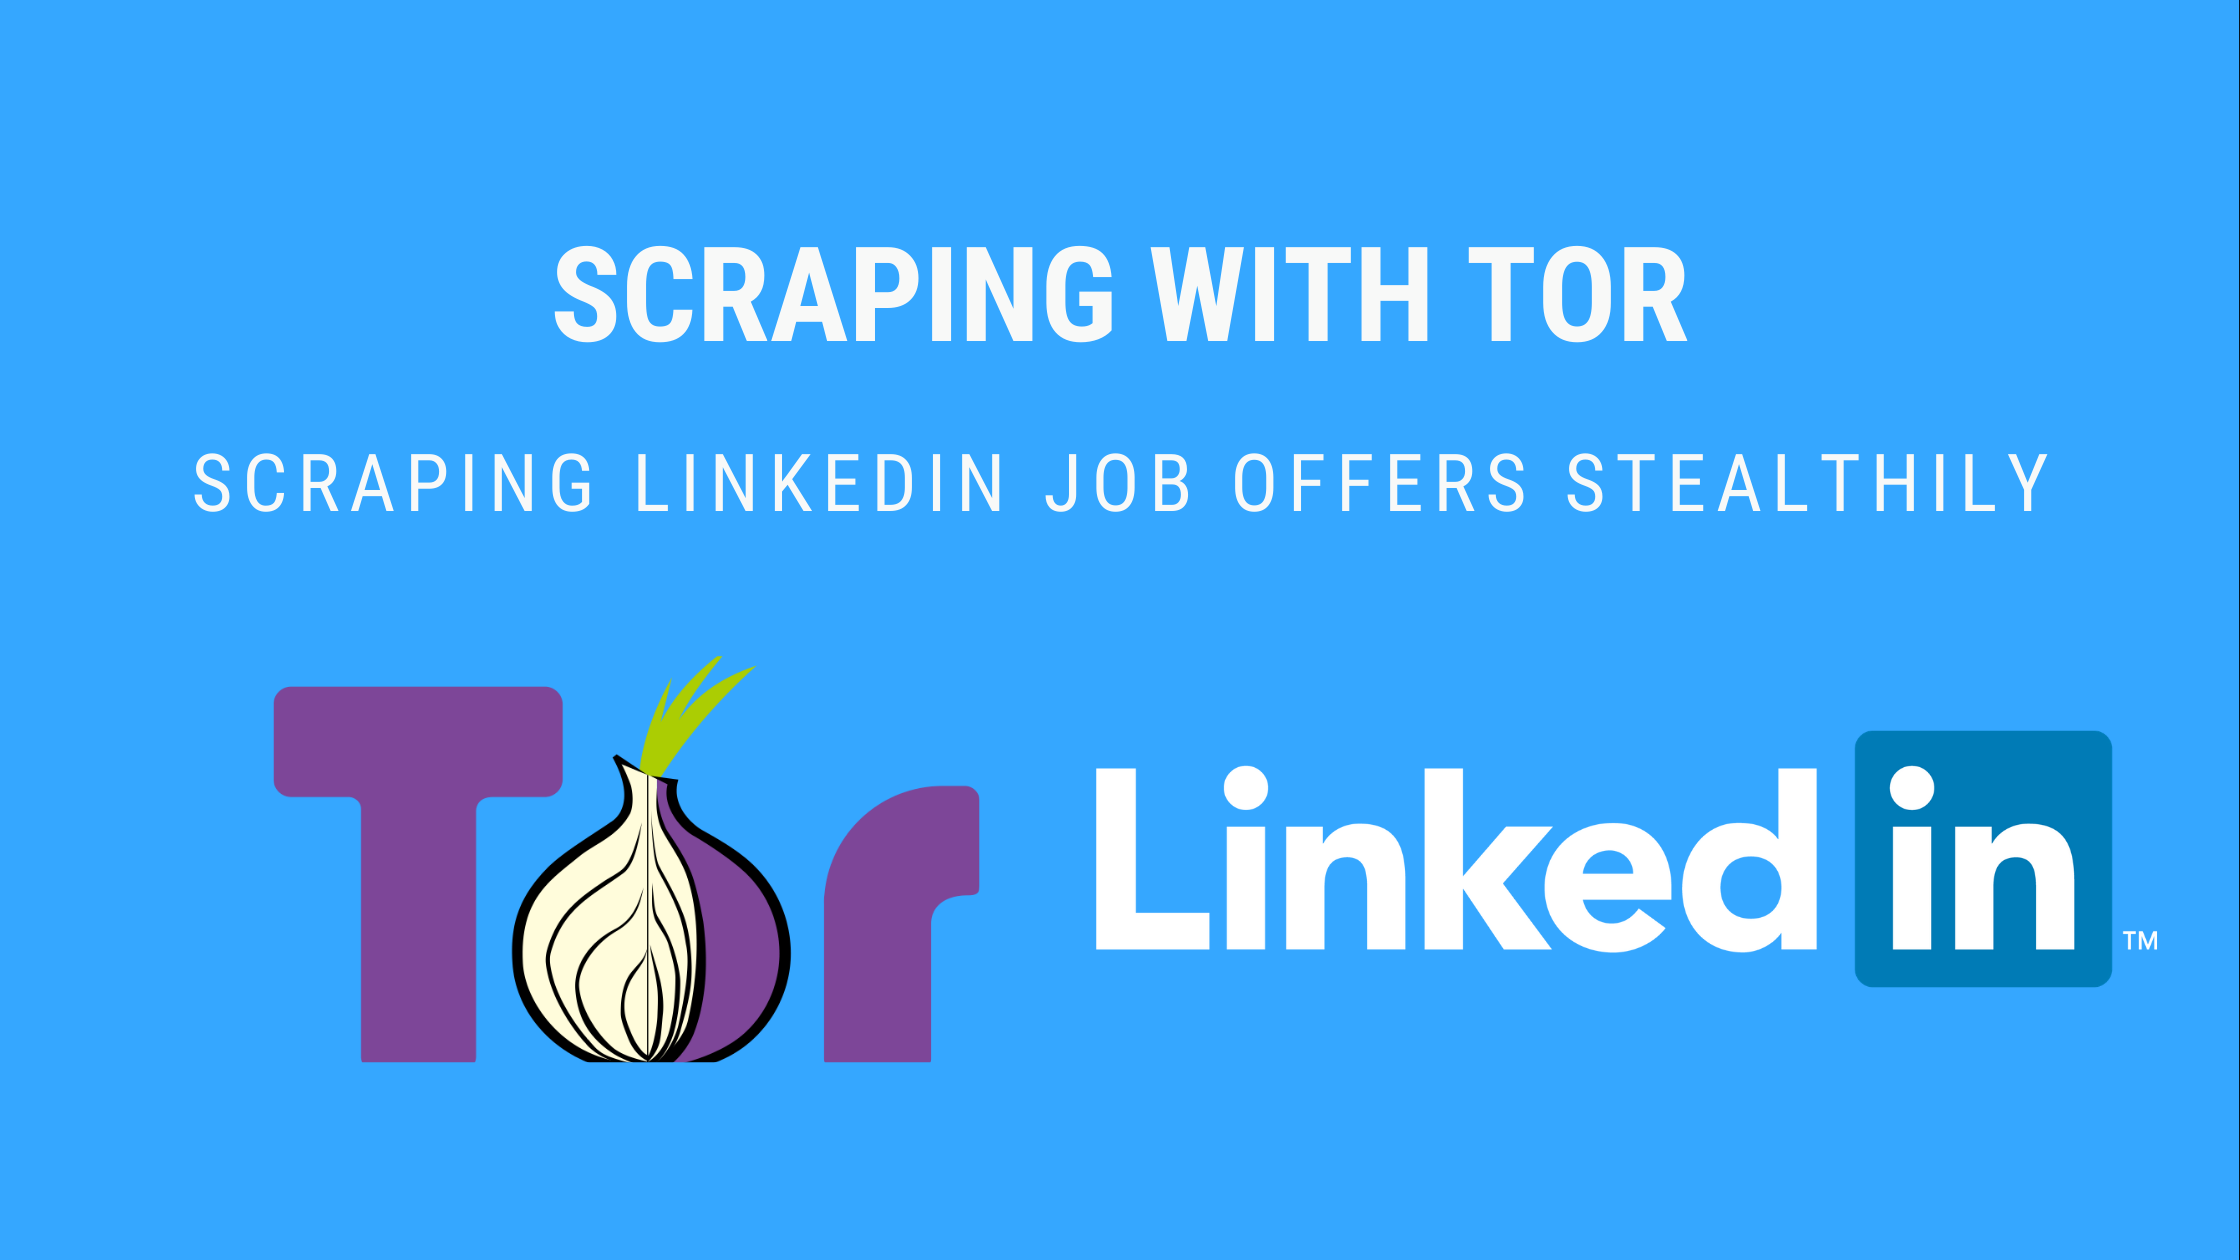 scraping with tor banner